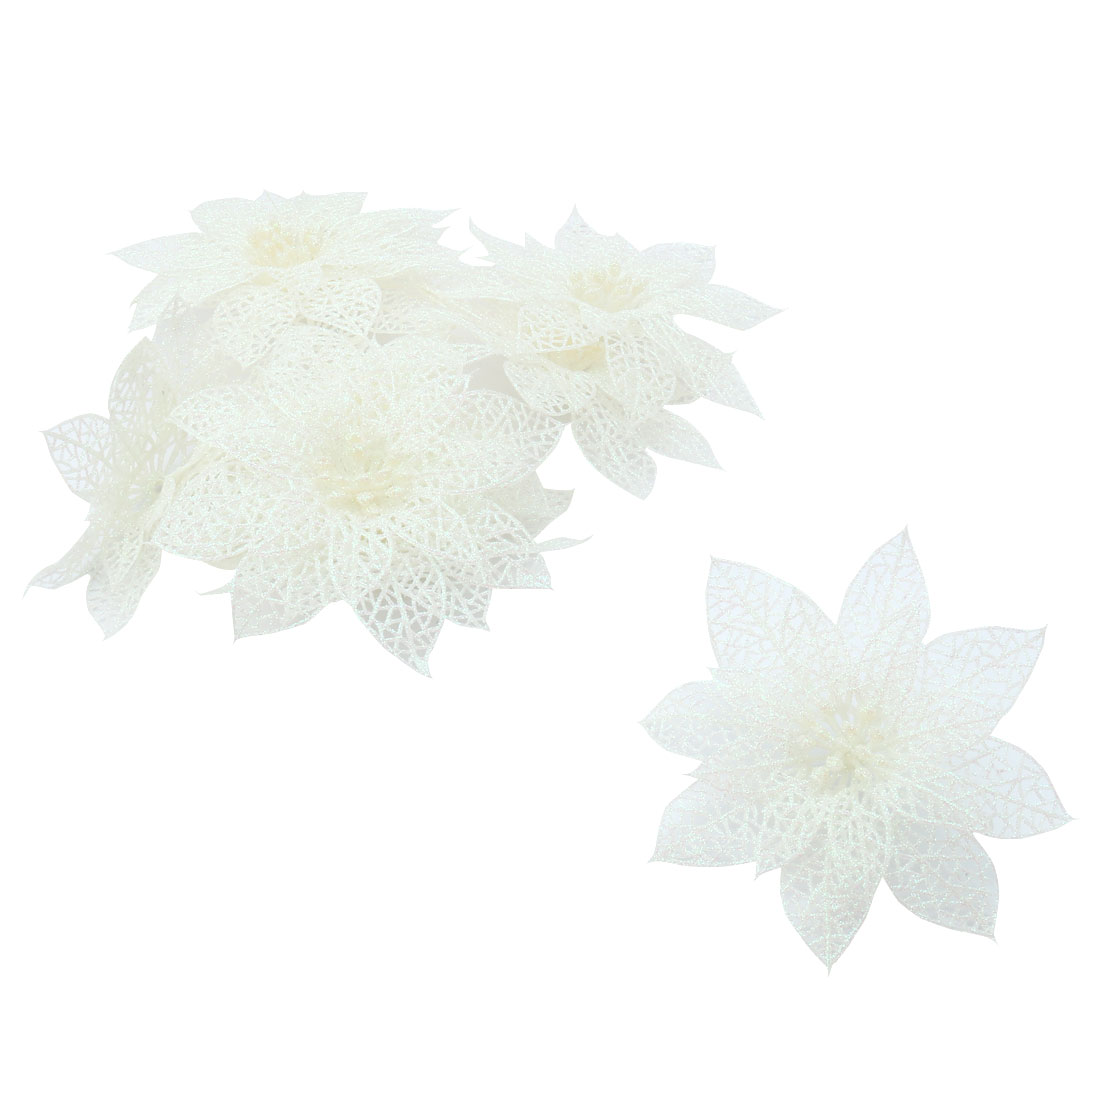 Festival Christmas Artificial Glitter Hanging Ornaments Flower White 10 PCS